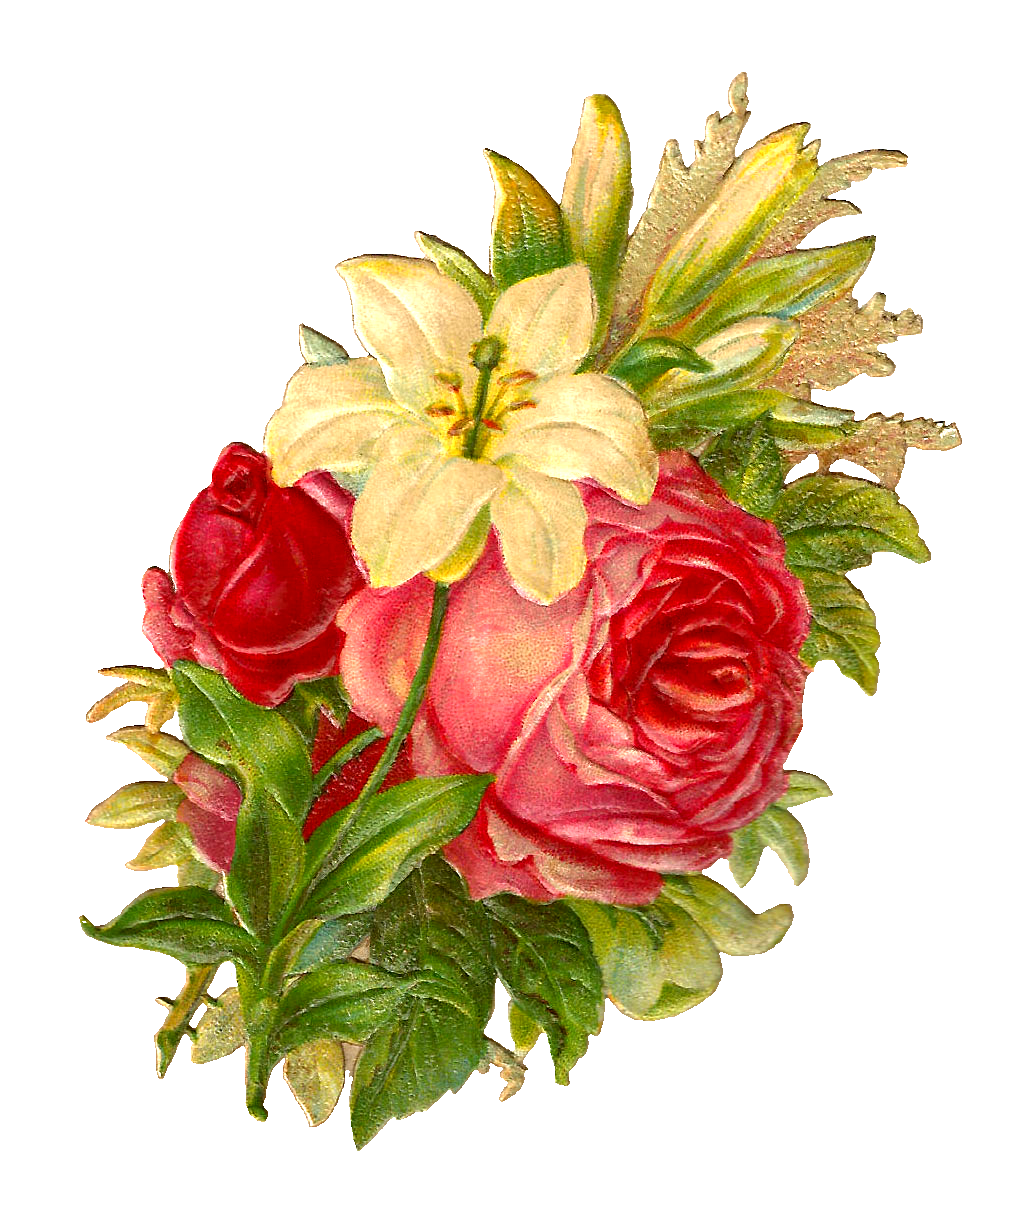 Antique Images: Free Digital Flower Bouquet Images of Red ...